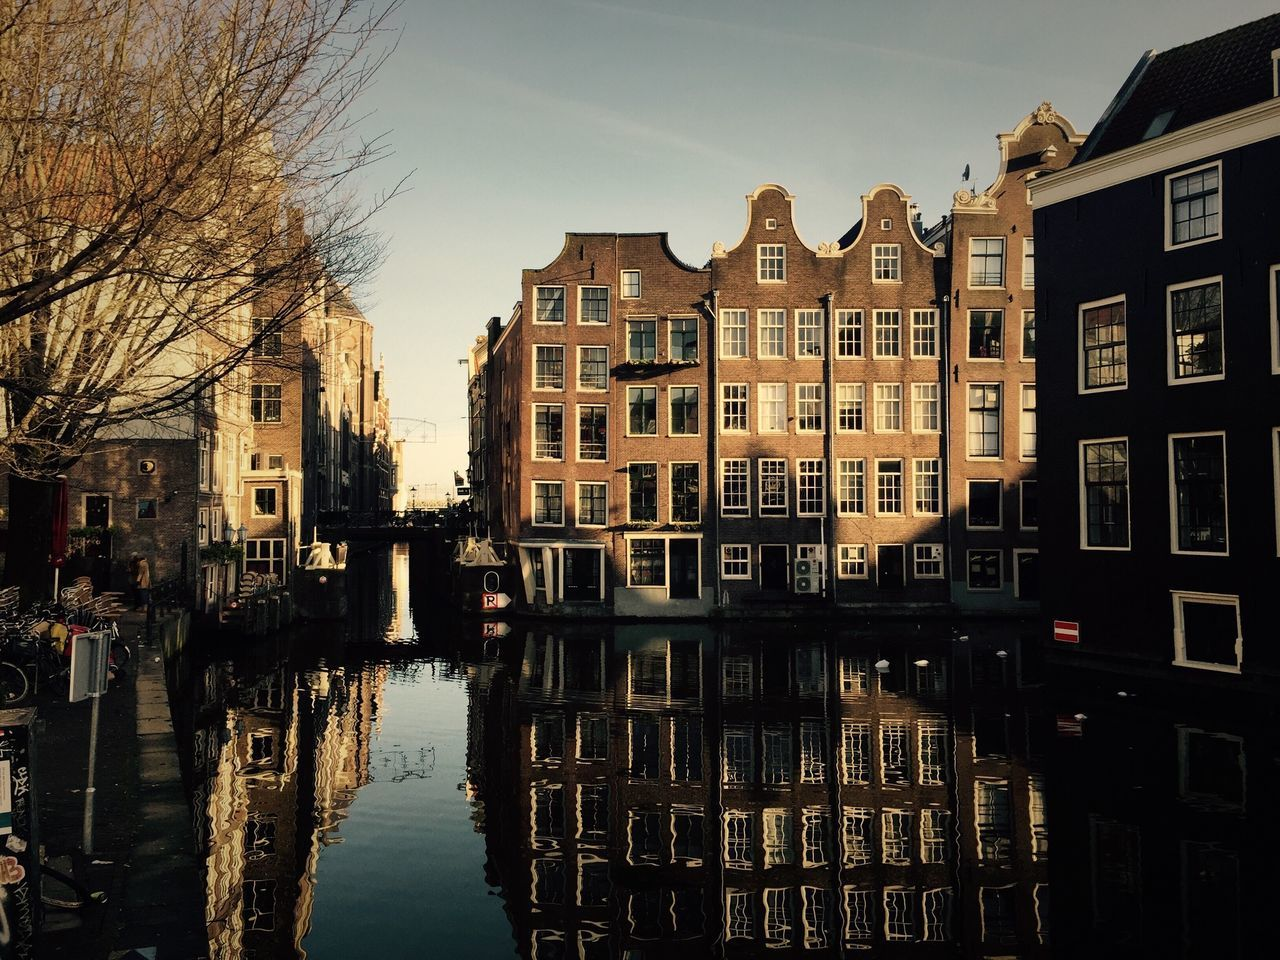 Amsterdam Canal Beauty Taking Photos Beautiful Amsterdam Amsterdamcity Holland IPhoneography Iphone6plus Streetphotography Street Photography Streetphoto_color Streetlife The Street Photographer - 2016 EyeEm Awards People And Places The City Light